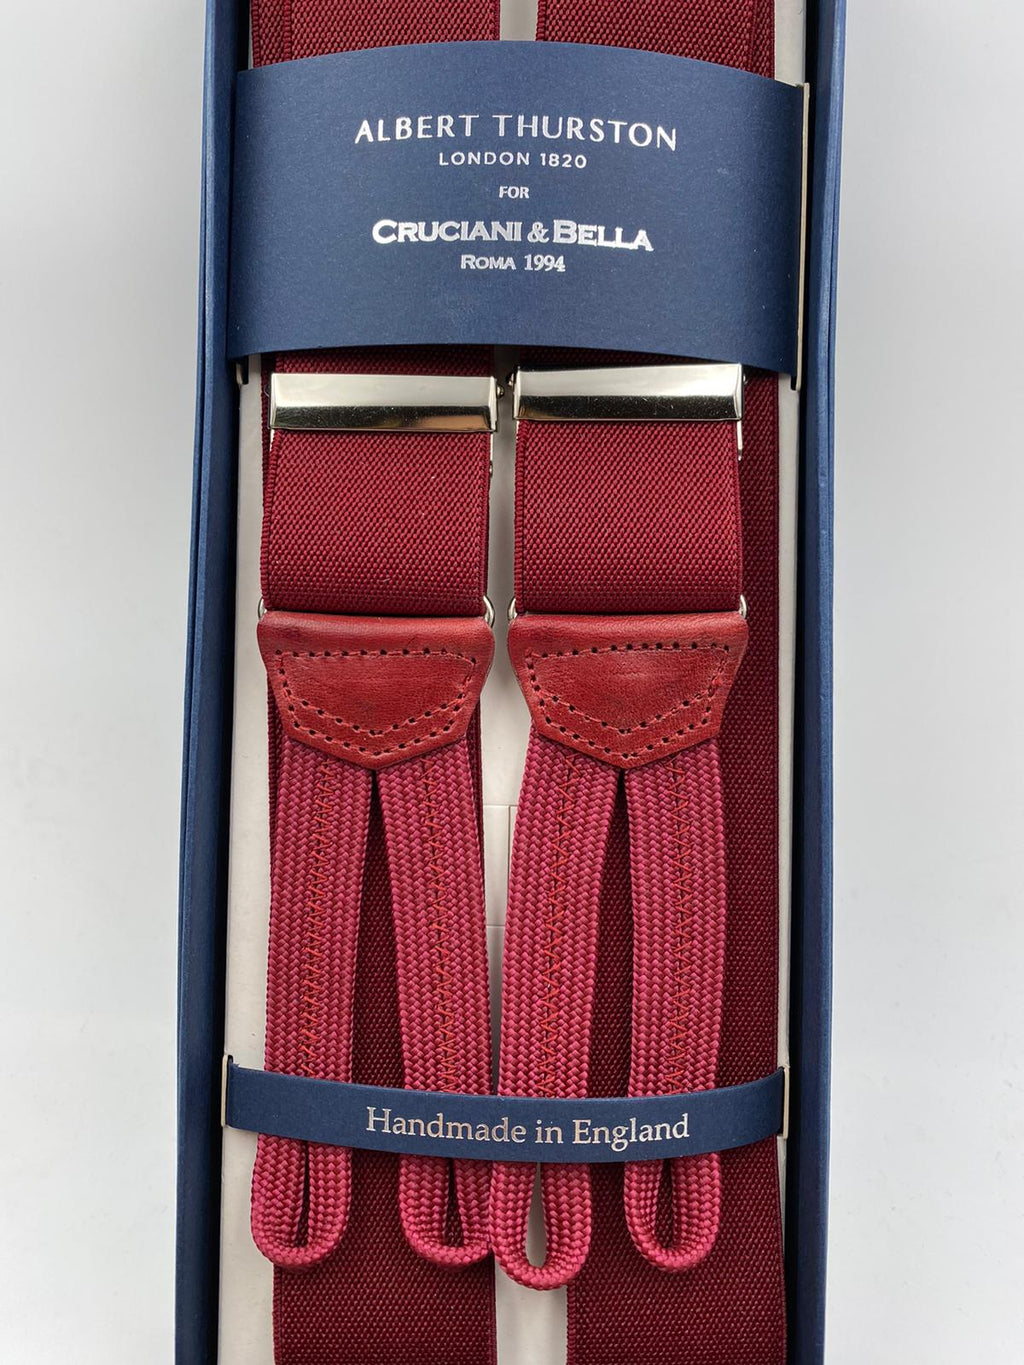 Albert Thurston for Cruciani & Bella Made in England Adjustable Sizing 35 mm elastic  brace Wine Plain Braid ends Y-Shaped Nickel Fittings Size: L #5363